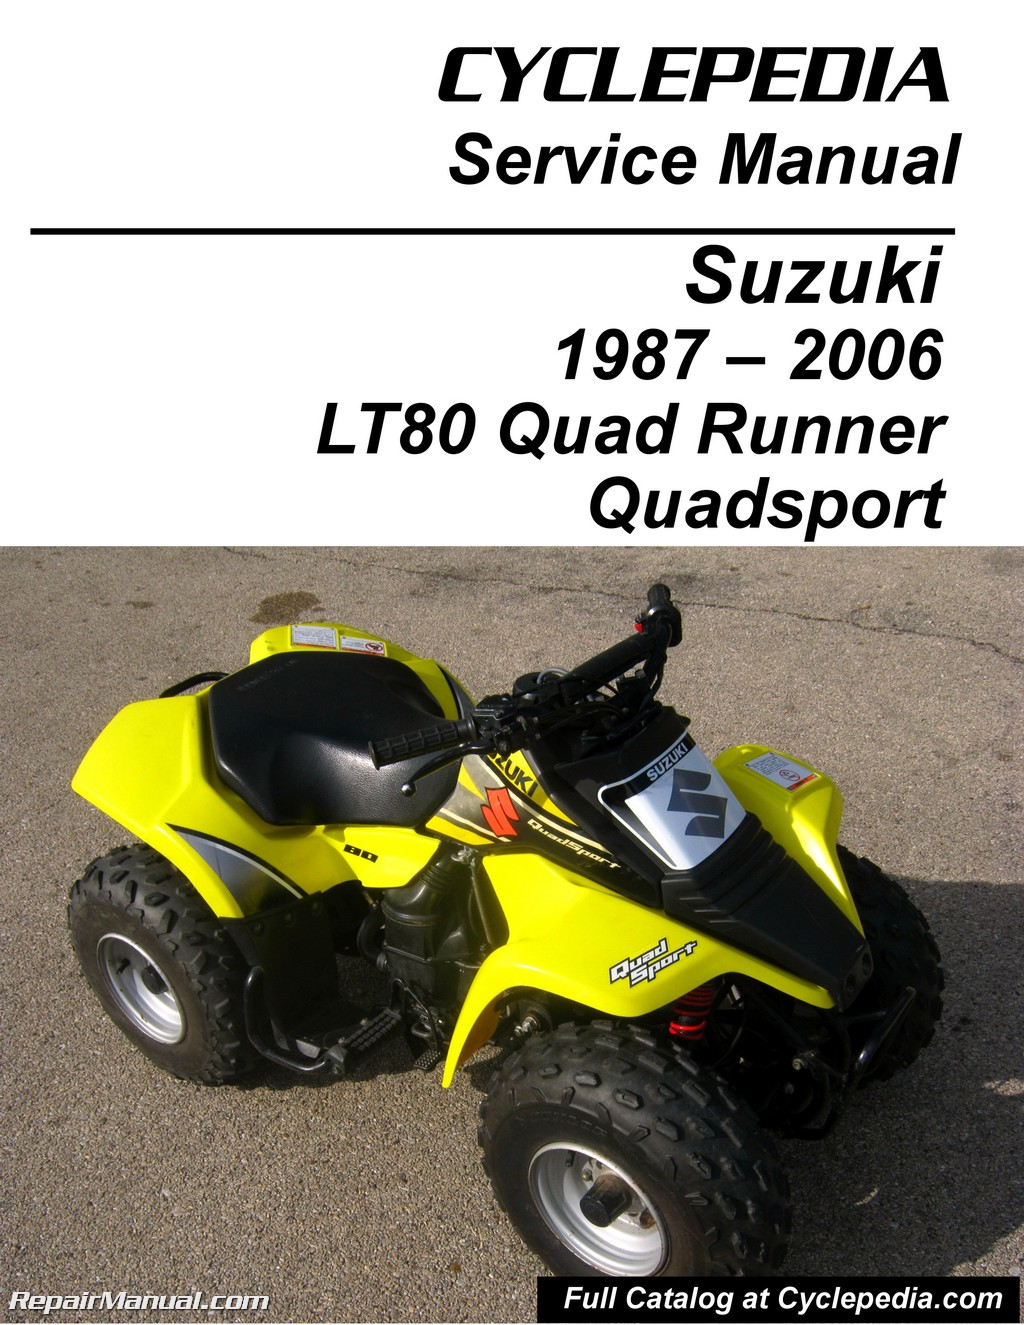 hight resolution of suzuki lt80 quadsport kawasaki kfx80 cyclepedia printed service manual rh repairmanual com kawasaki bayou 220 wiring schematic kawasaki prairie atv wiring